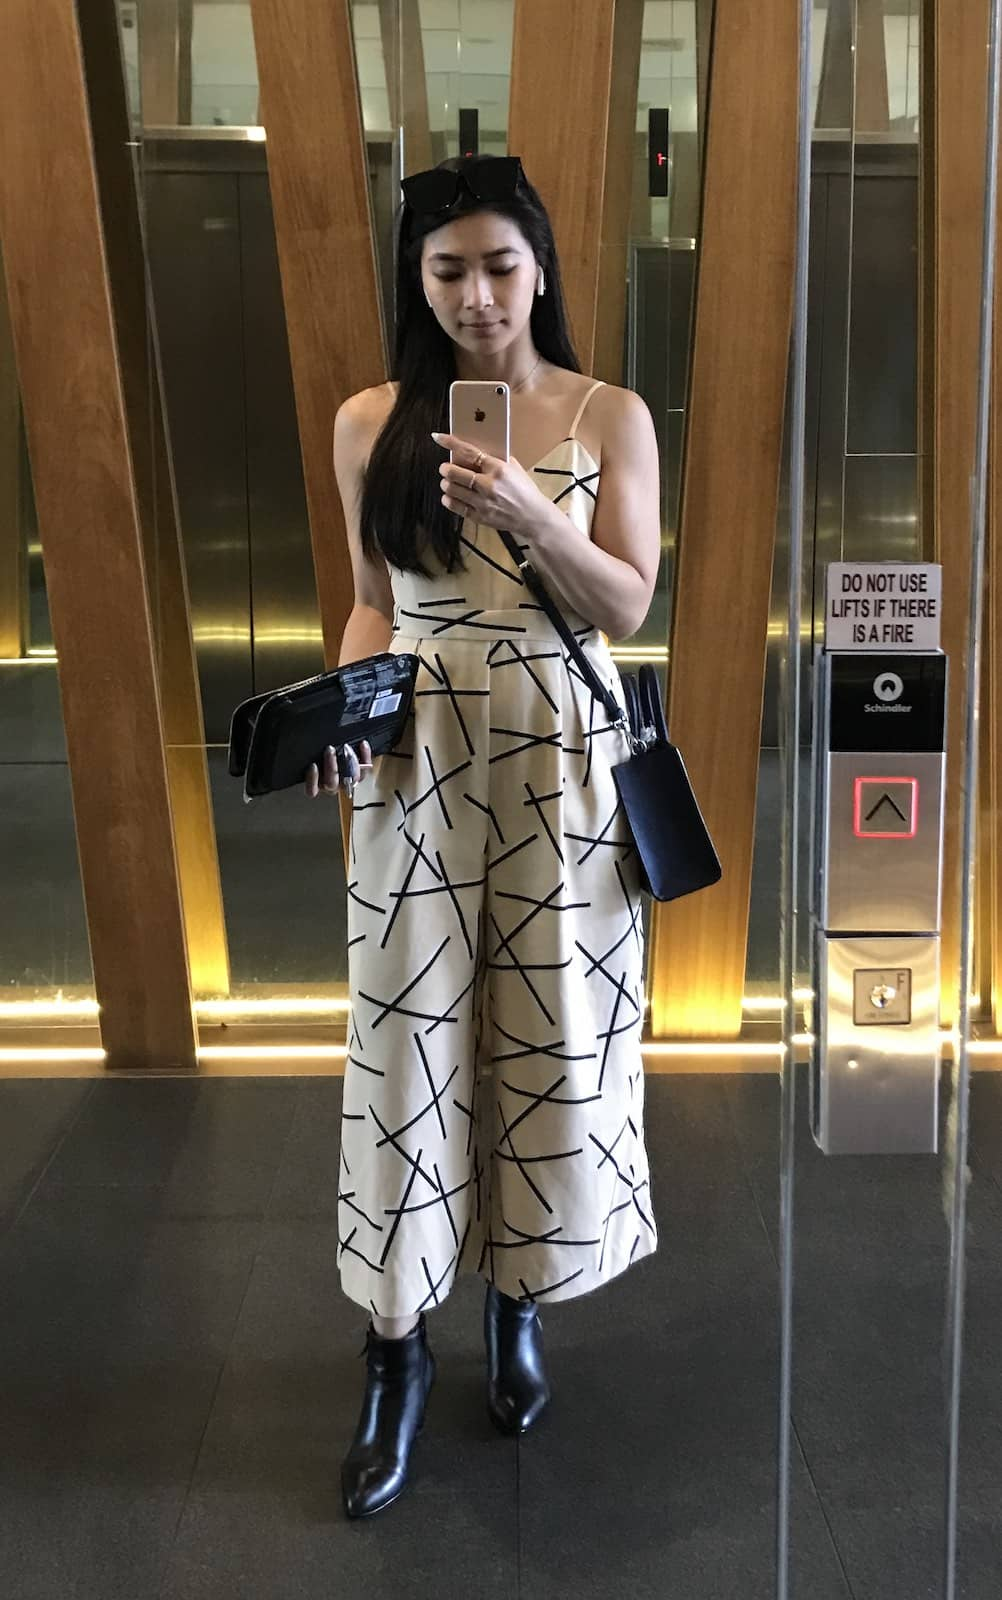 A woman with long dark hair wearing a beige sleeveless wide-leg jumpsuit, taking a selfie in a mirrored surface